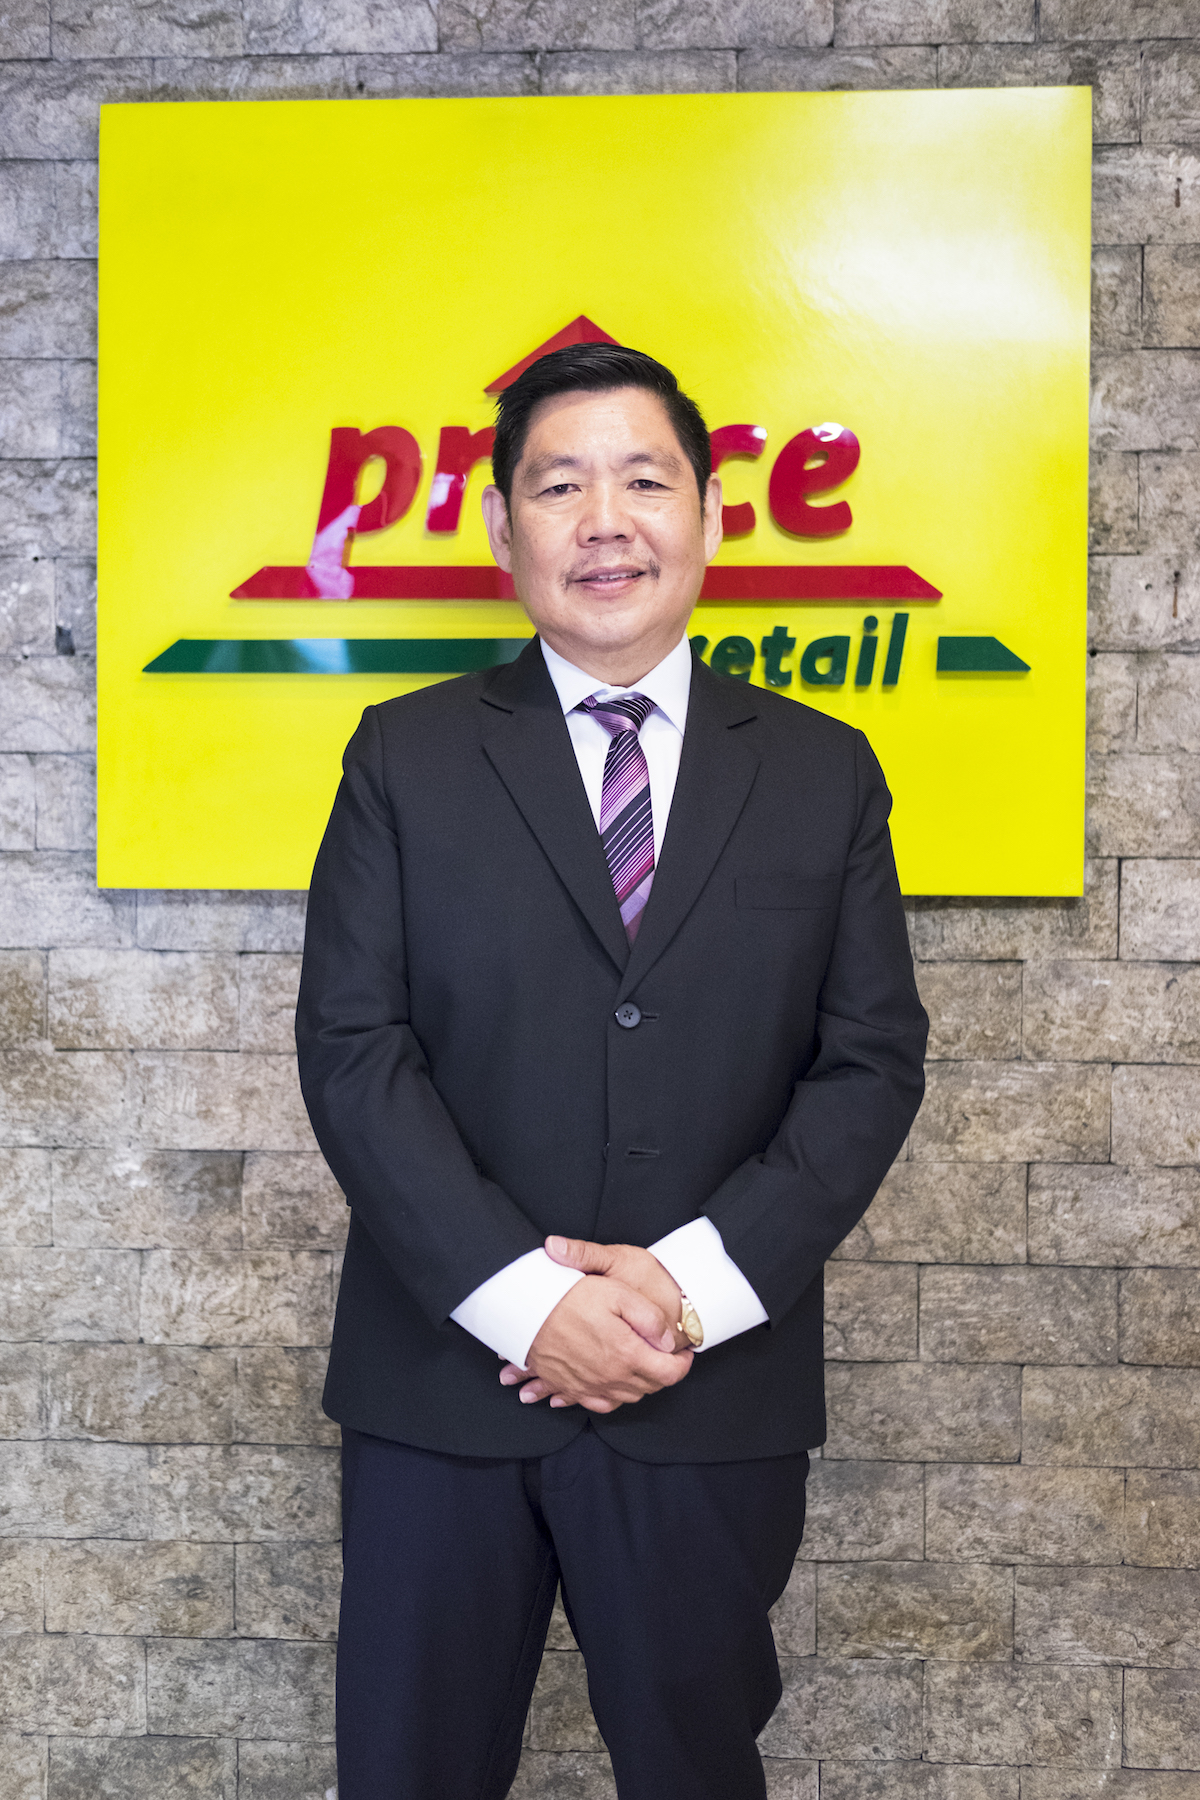 Robert Go, President and CEO of Prince Retail